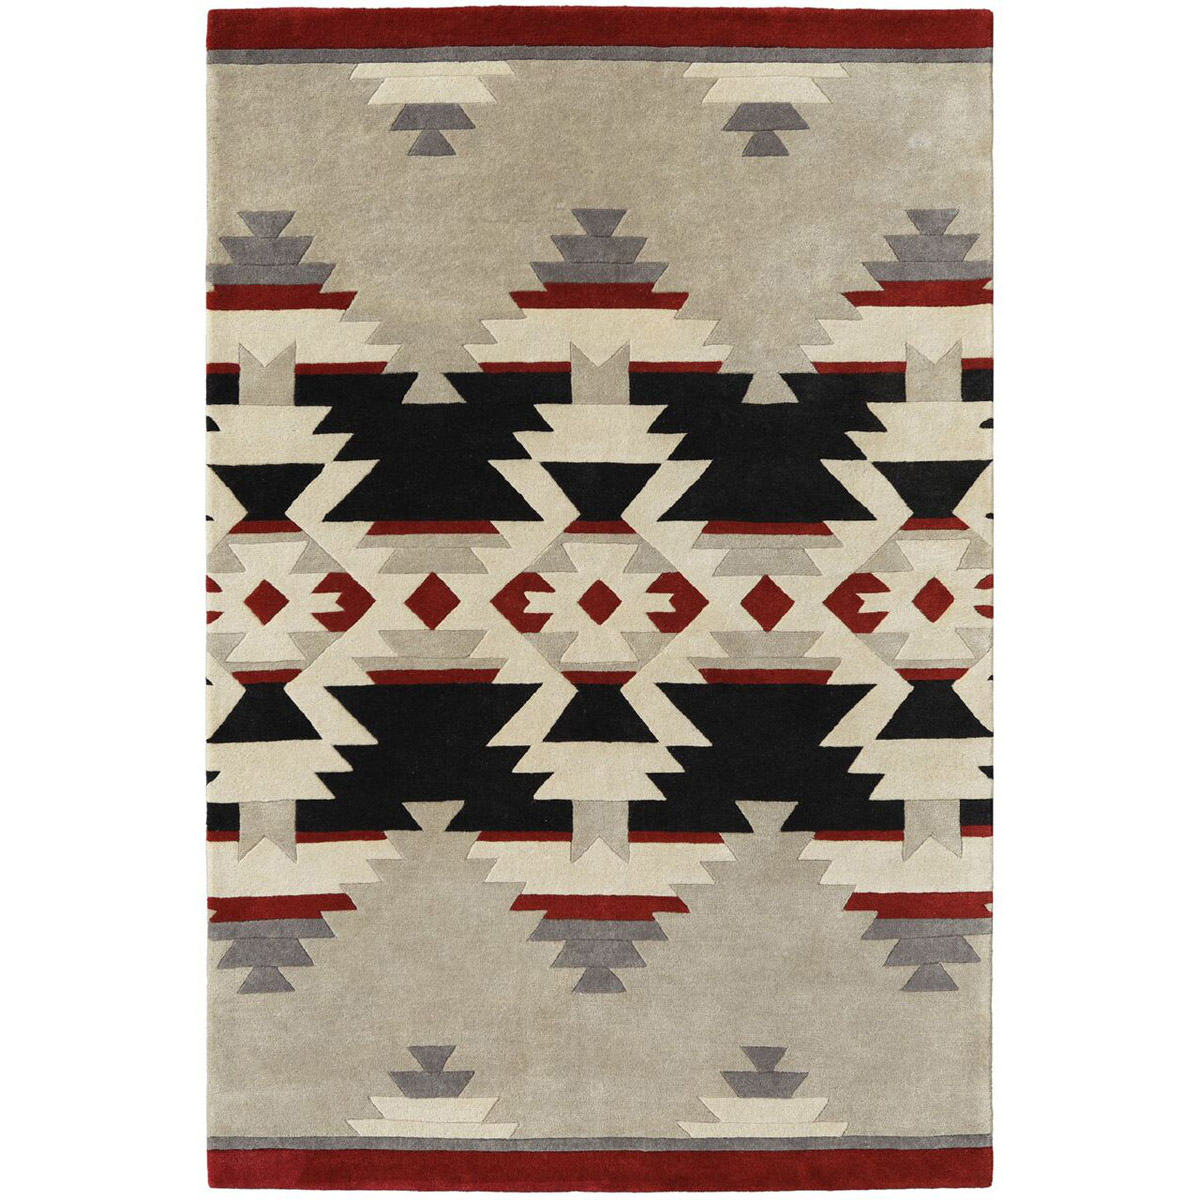 Mountain Majesty Rug - 5 x 7